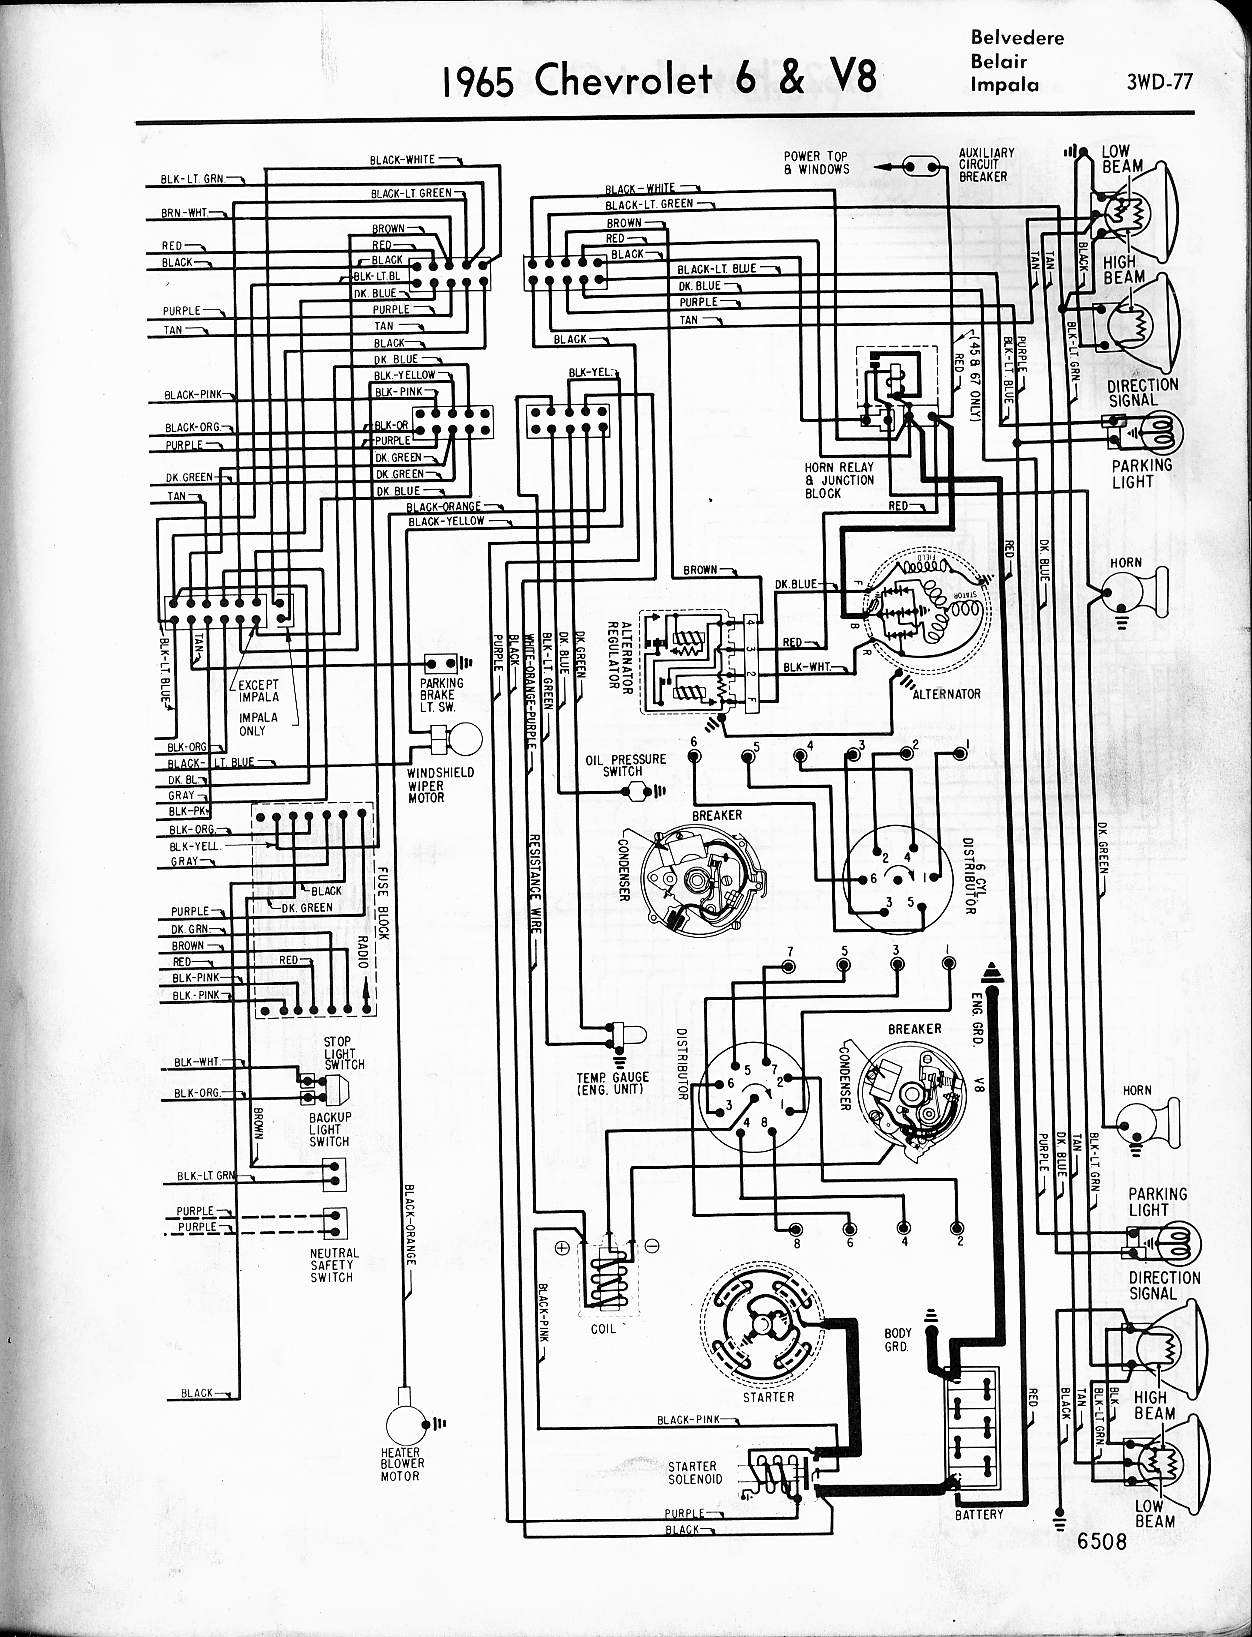 1970 Gm Radio Wiring Diagram Will Be A Thing Acdelco Images Gallery